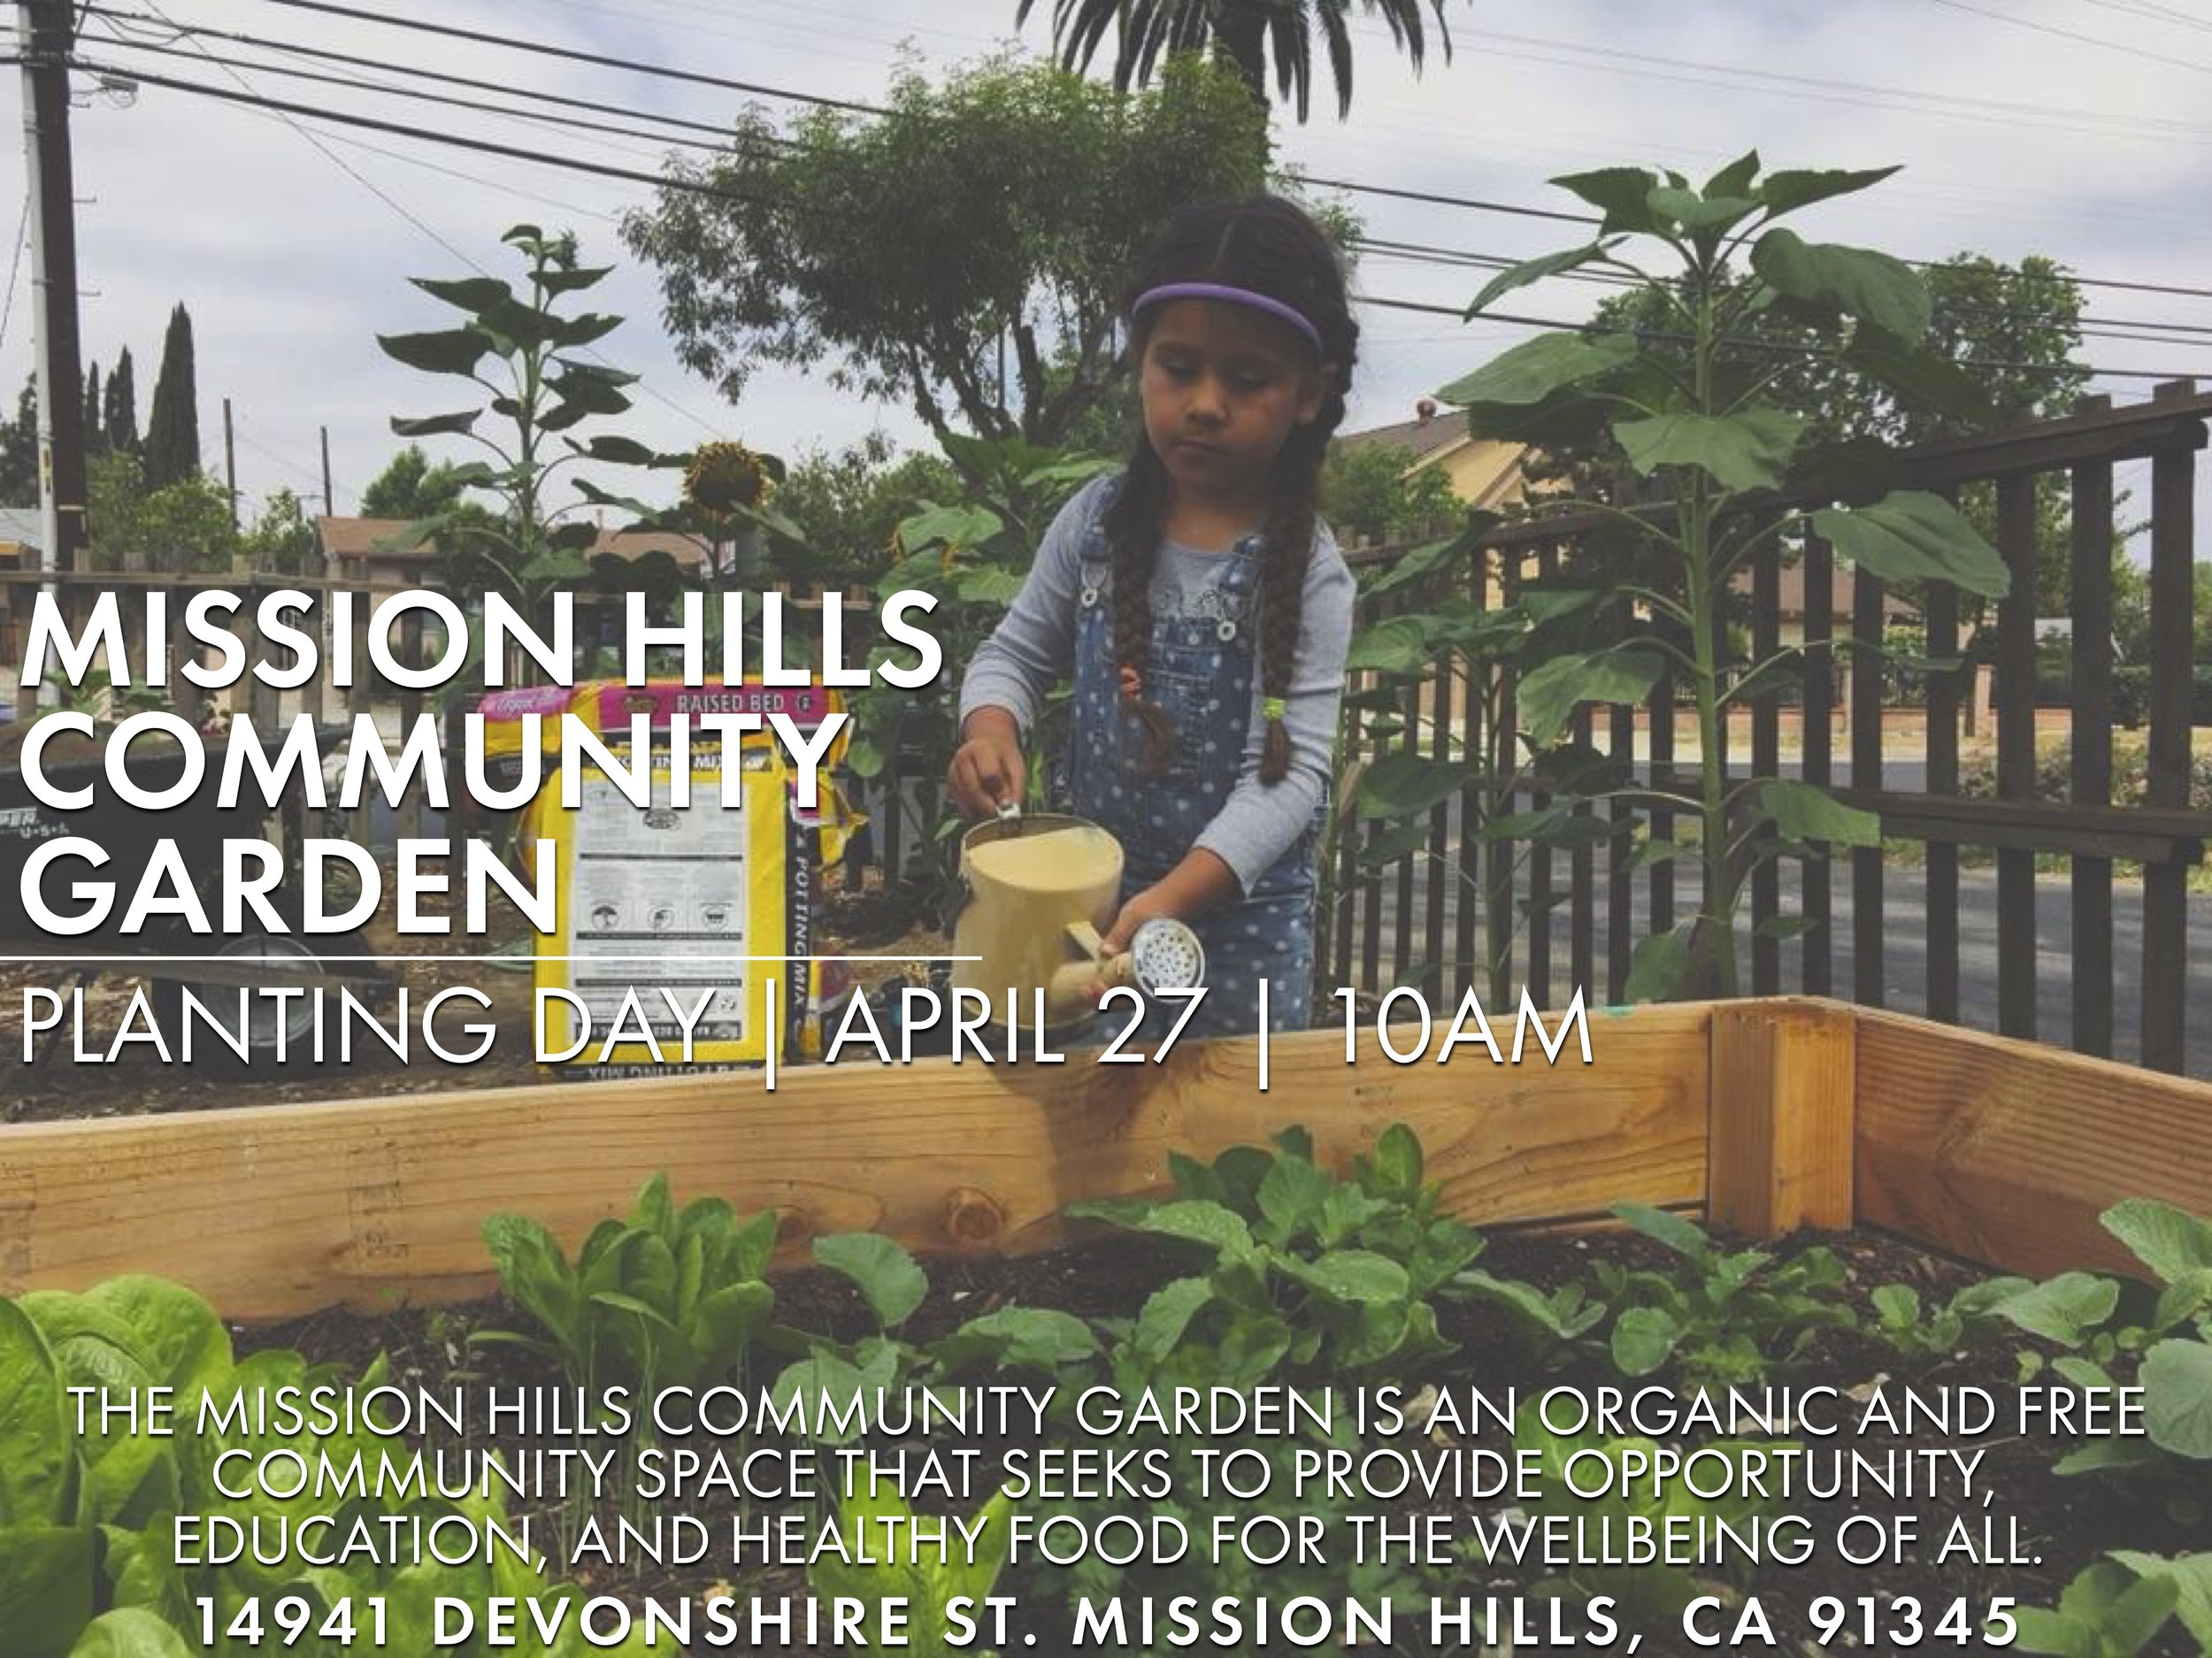 LOS-ANGELES-MISSION-HILLS-ORGANIC-COMMUNITY-GARDEN-PLANTING DAY-2019-JPEG.jpg